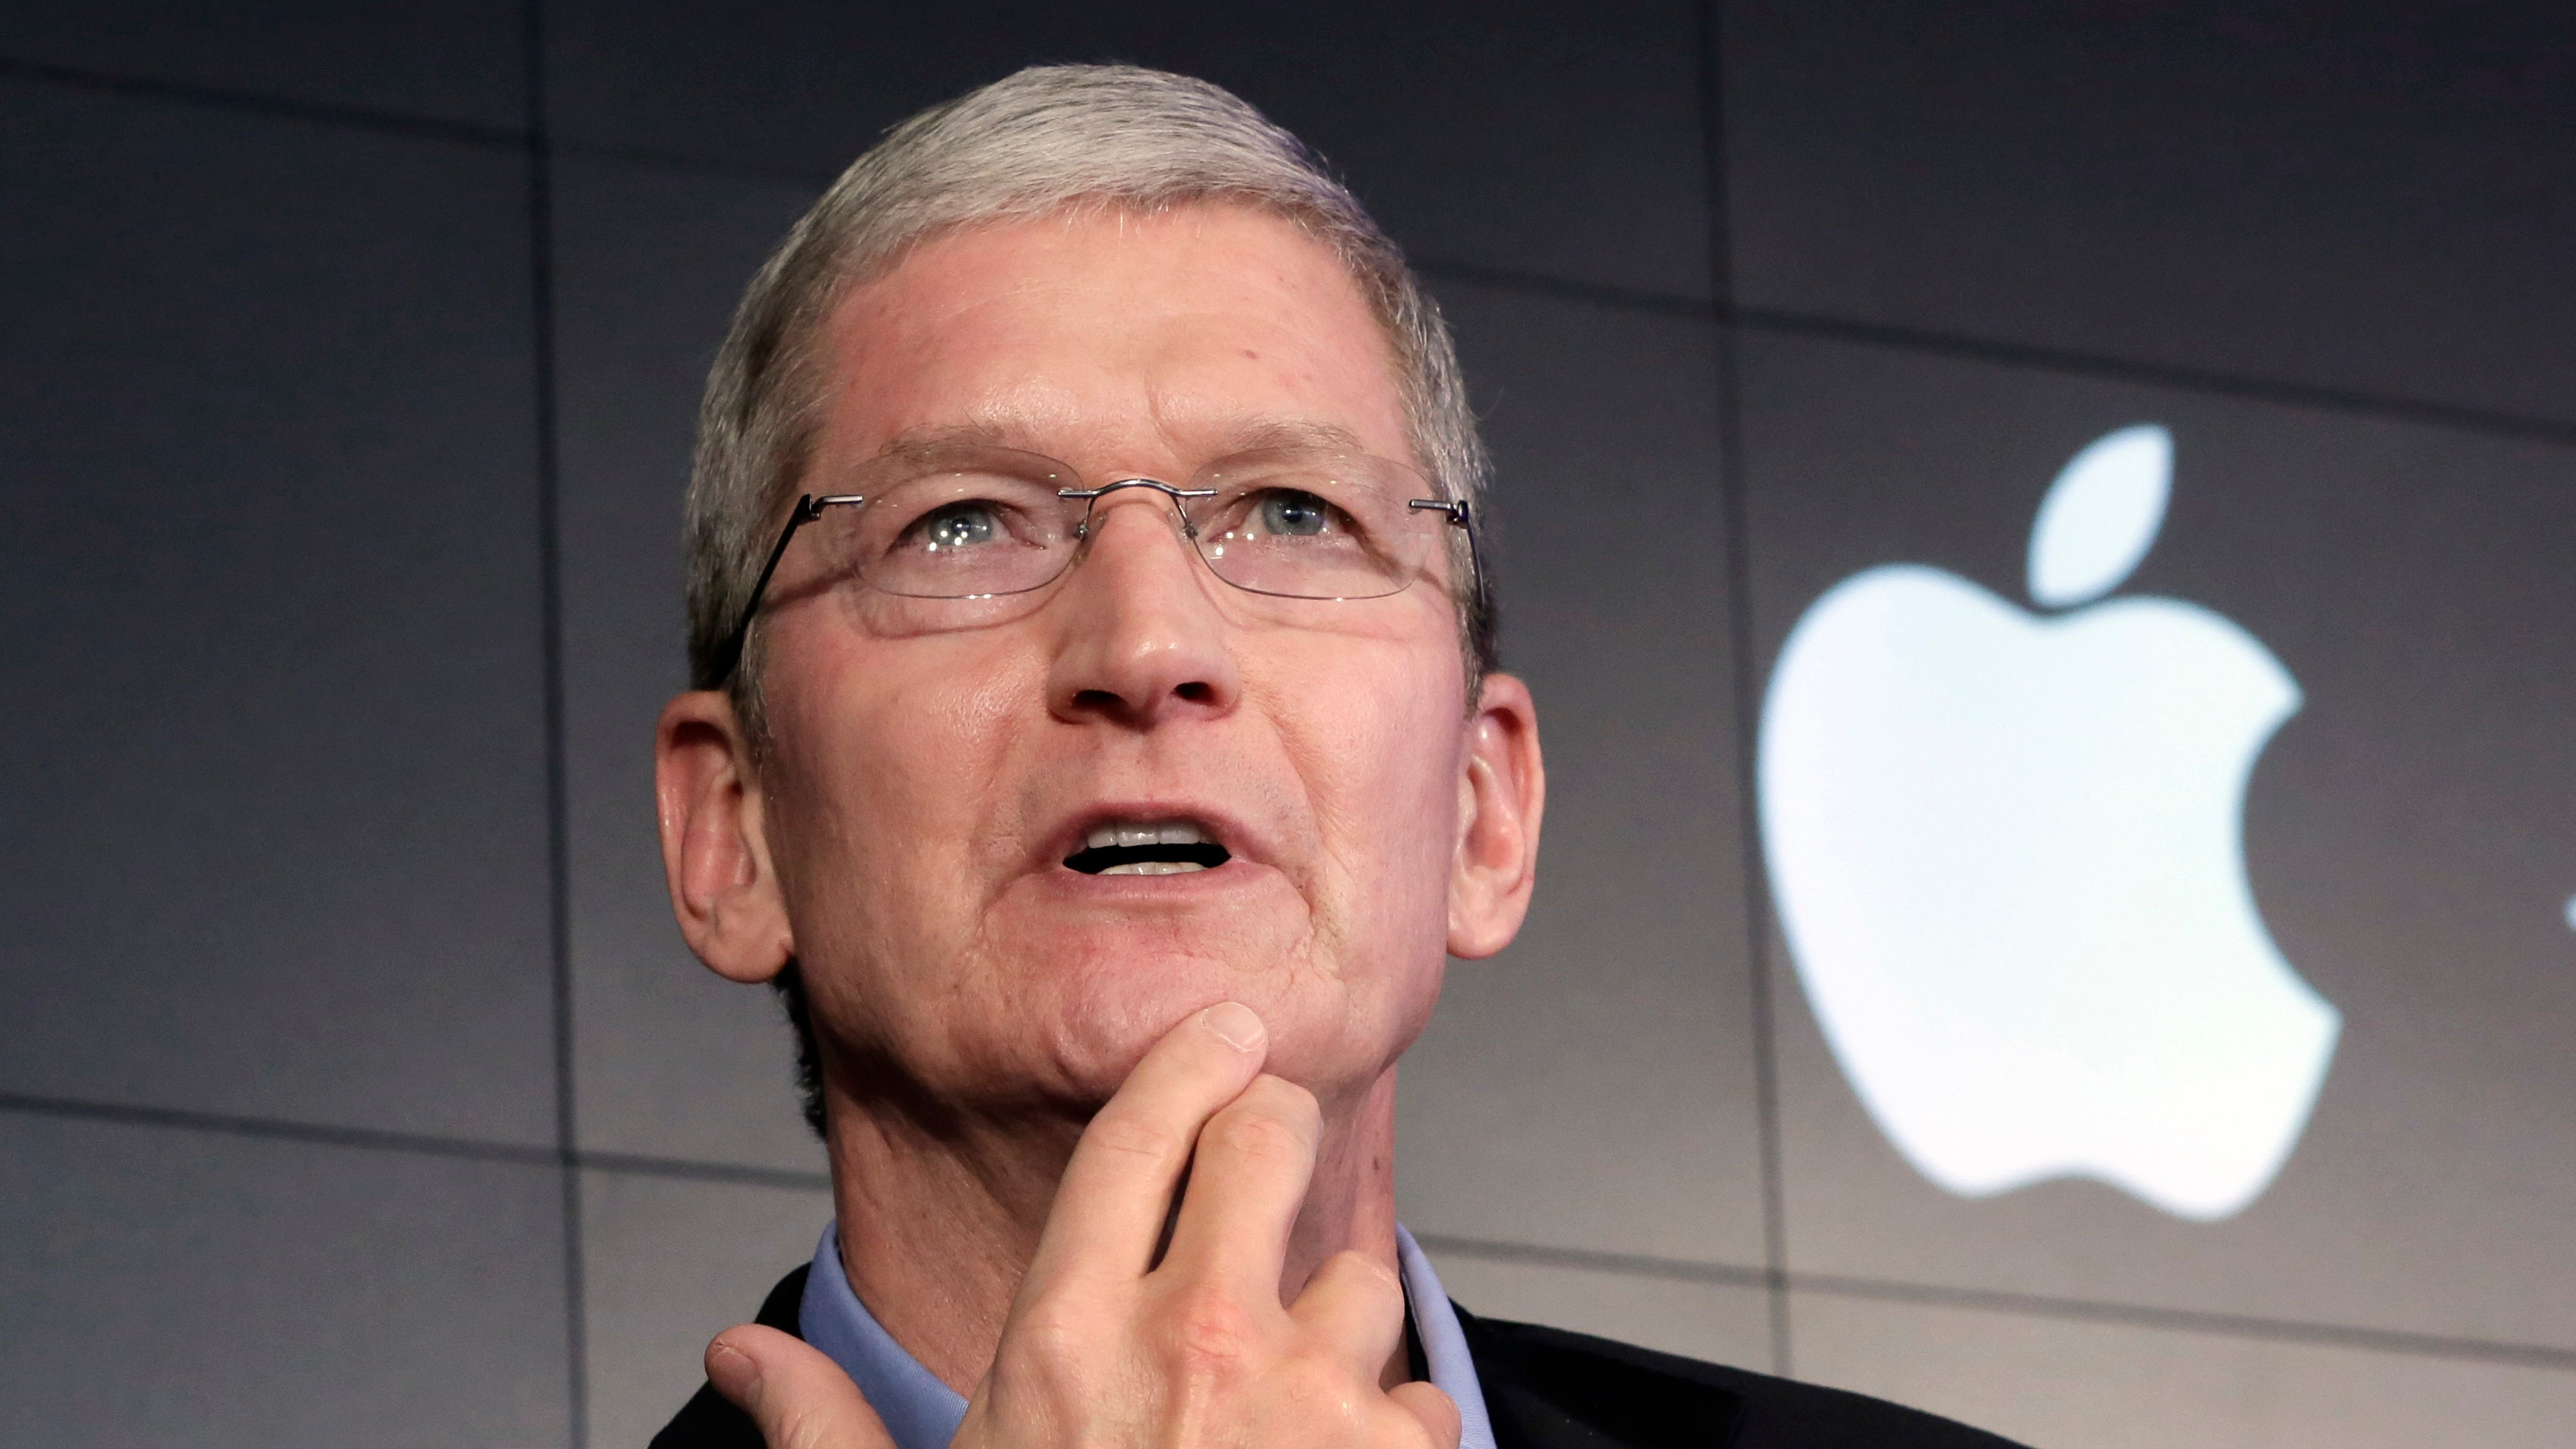 What Does Tim Cook Eat For Breakfast?